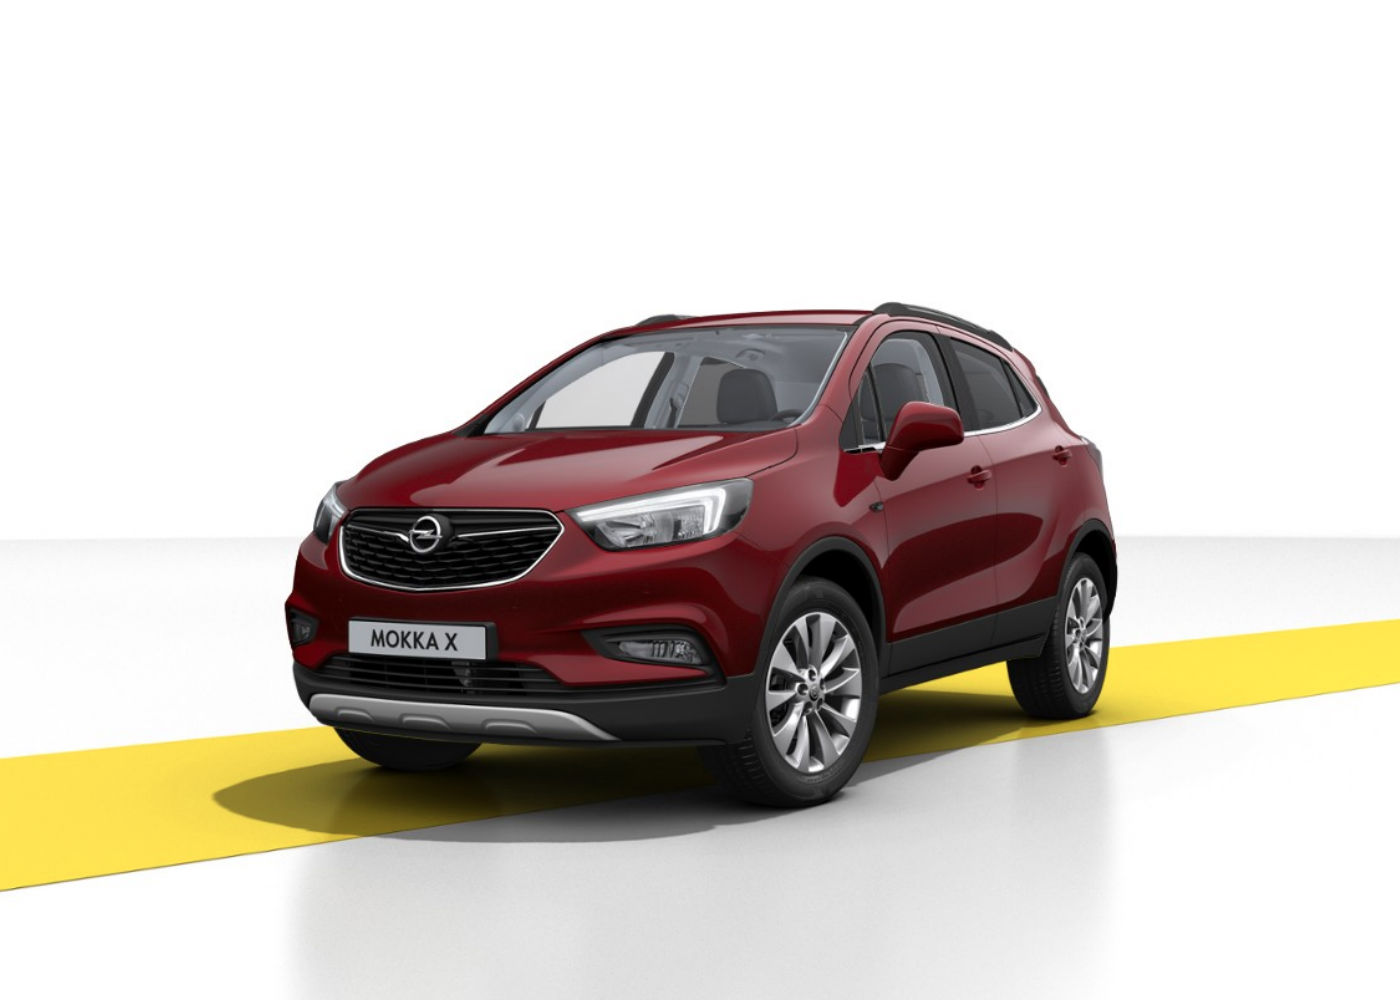 opel mokka x 1 4 turbo gpl tech 140cv 4x2 innovation rouge brown nuova a soli 23629 su miacar. Black Bedroom Furniture Sets. Home Design Ideas